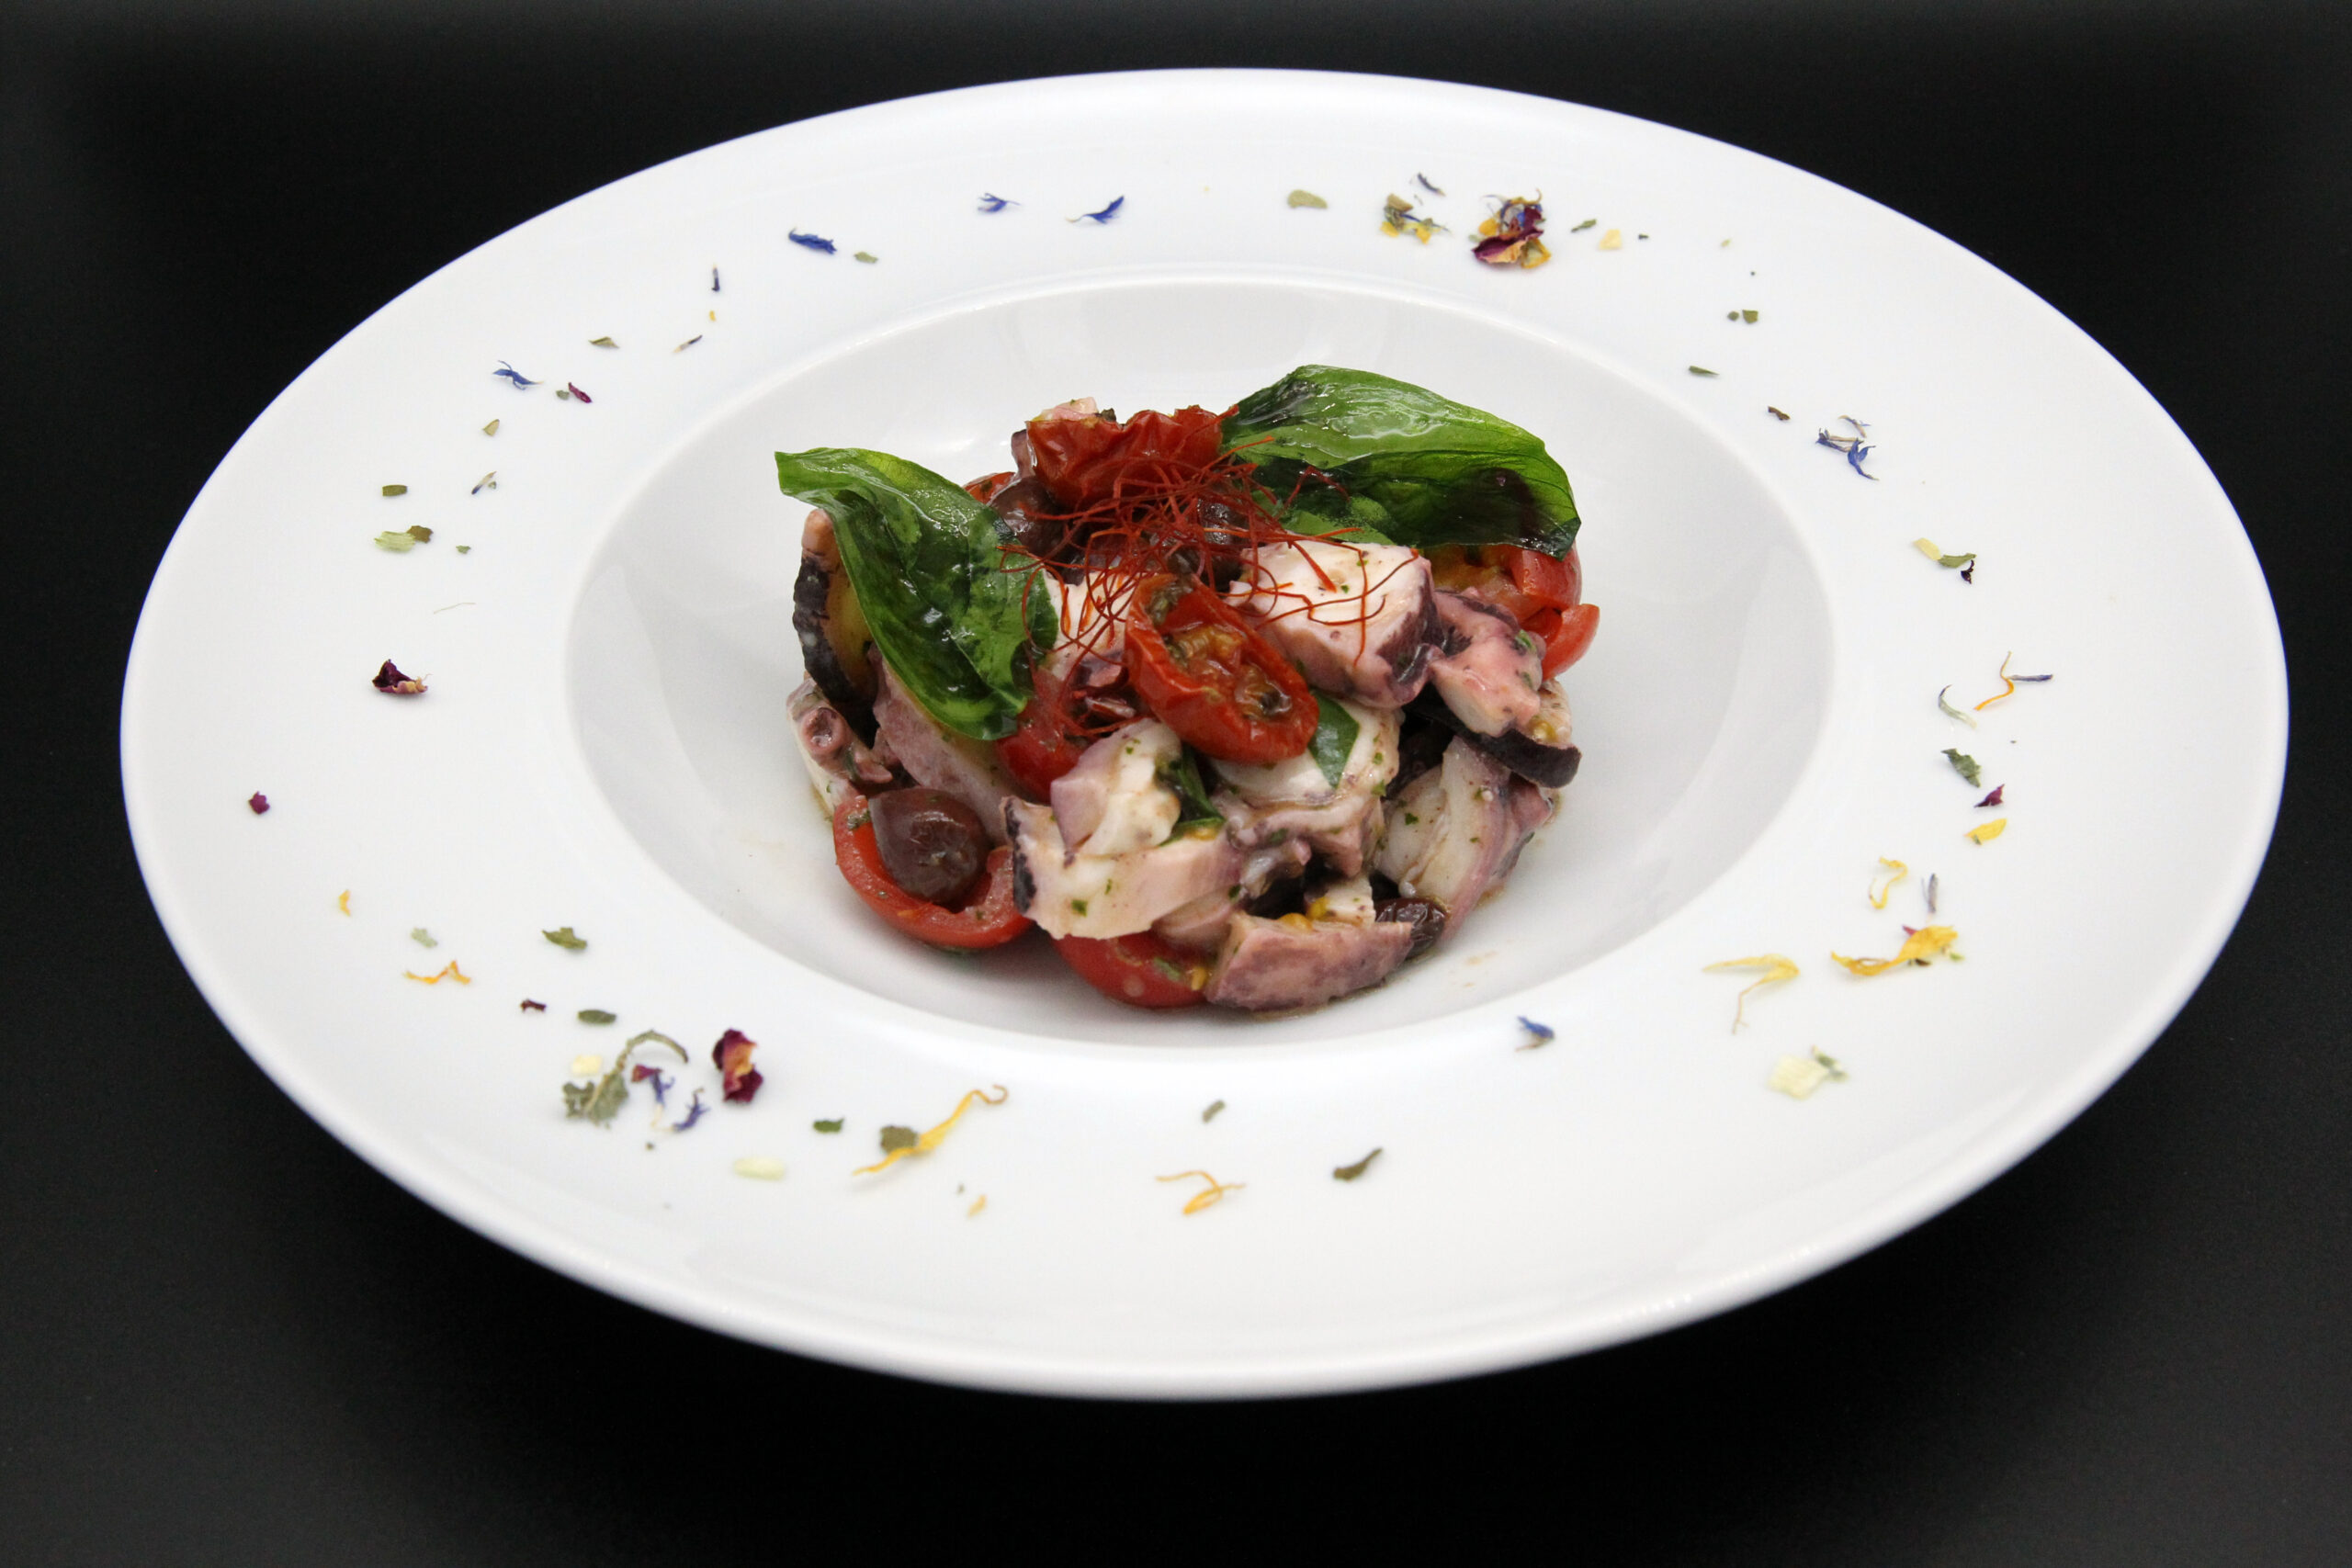 Octopus salad with cherry tomatoes and Taggiasca olives